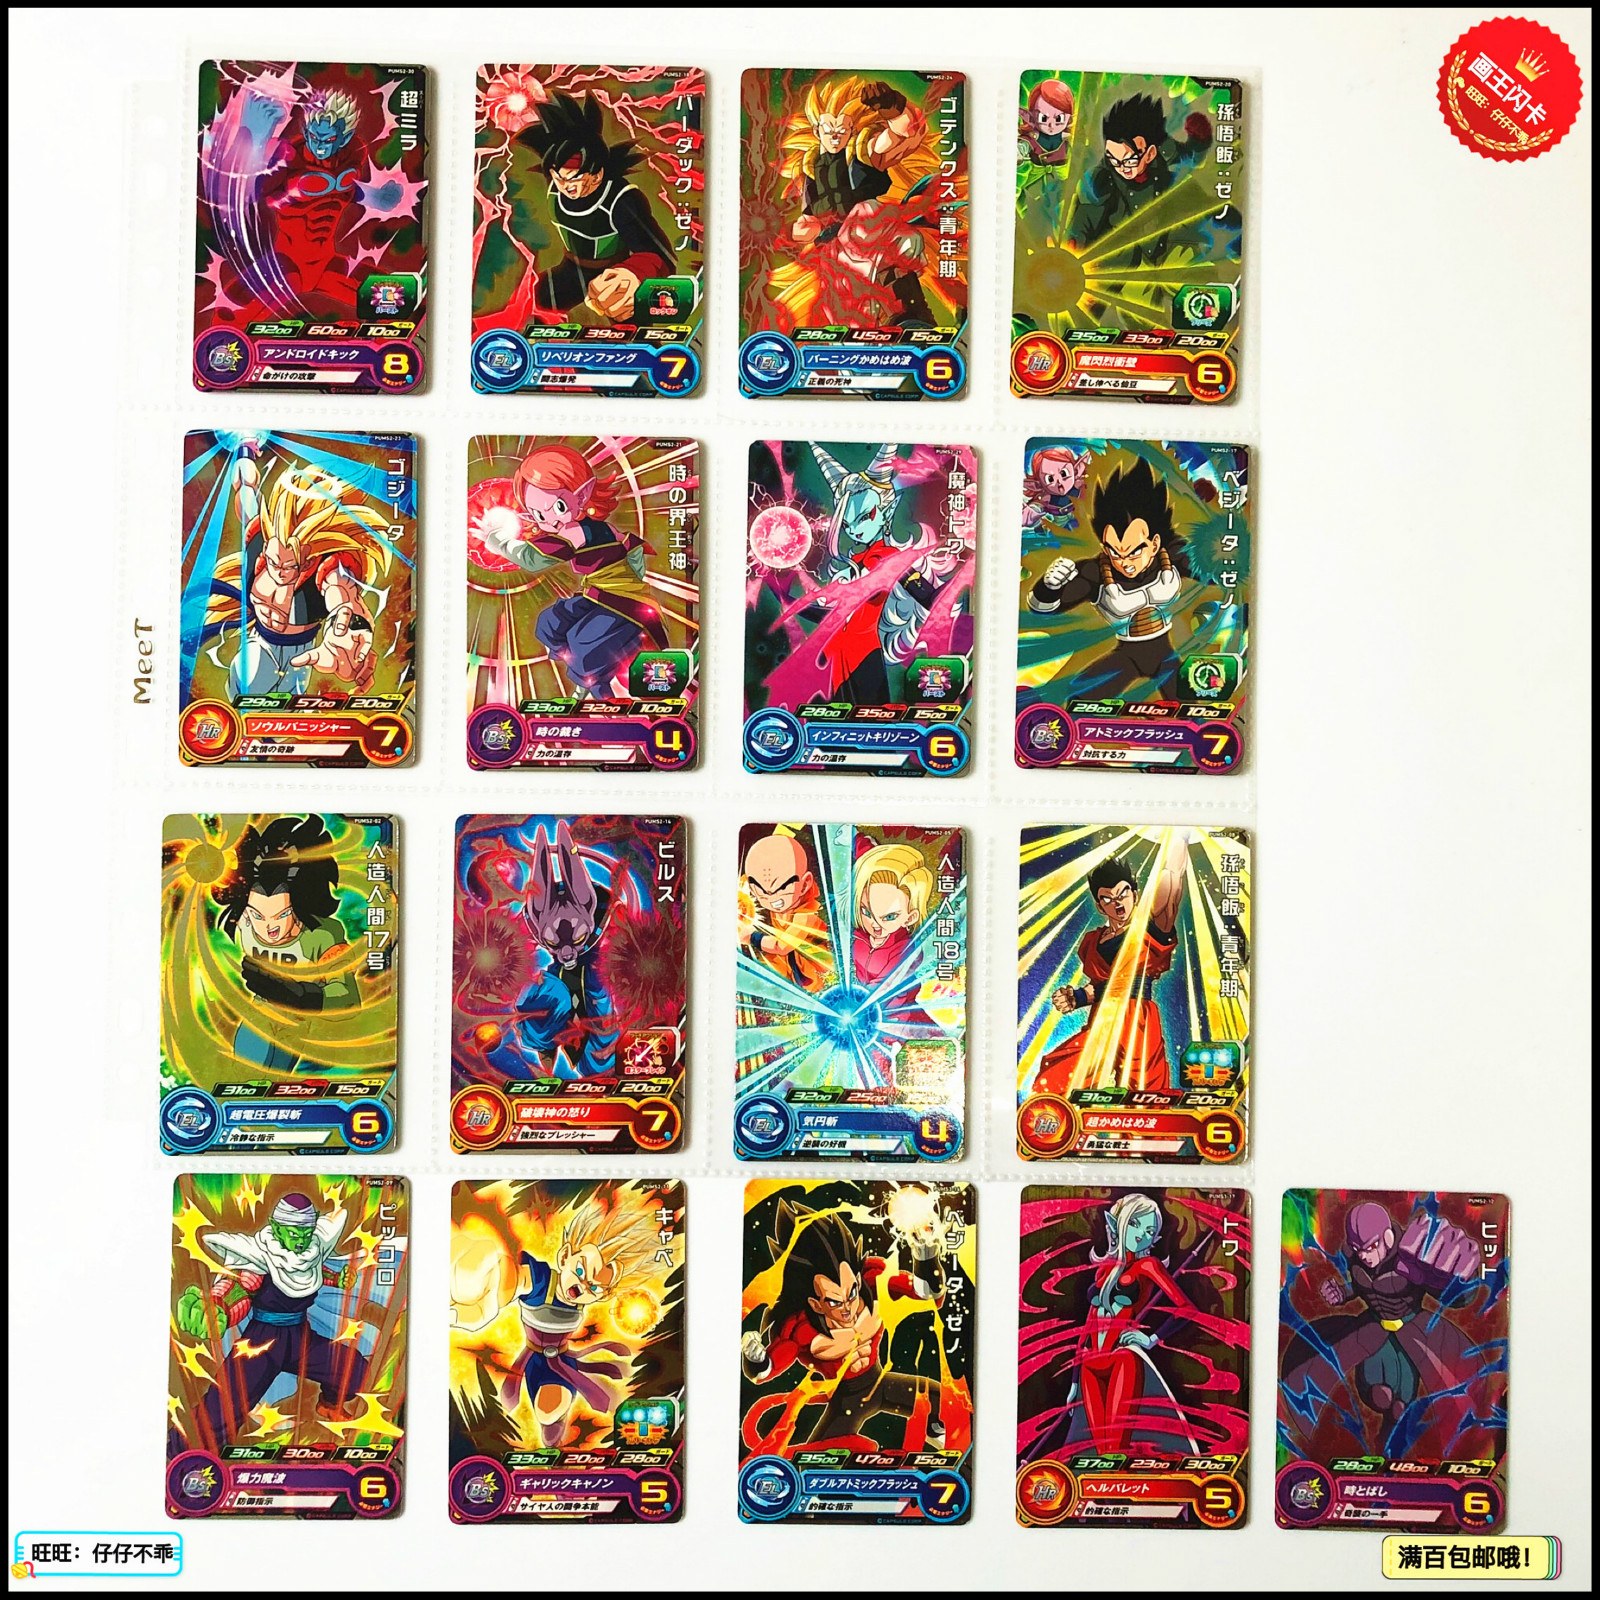 Japan Original Dragon Ball Hero Card PUMS2 Goku Toys Hobbies Collectibles Game Collection Anime Cards